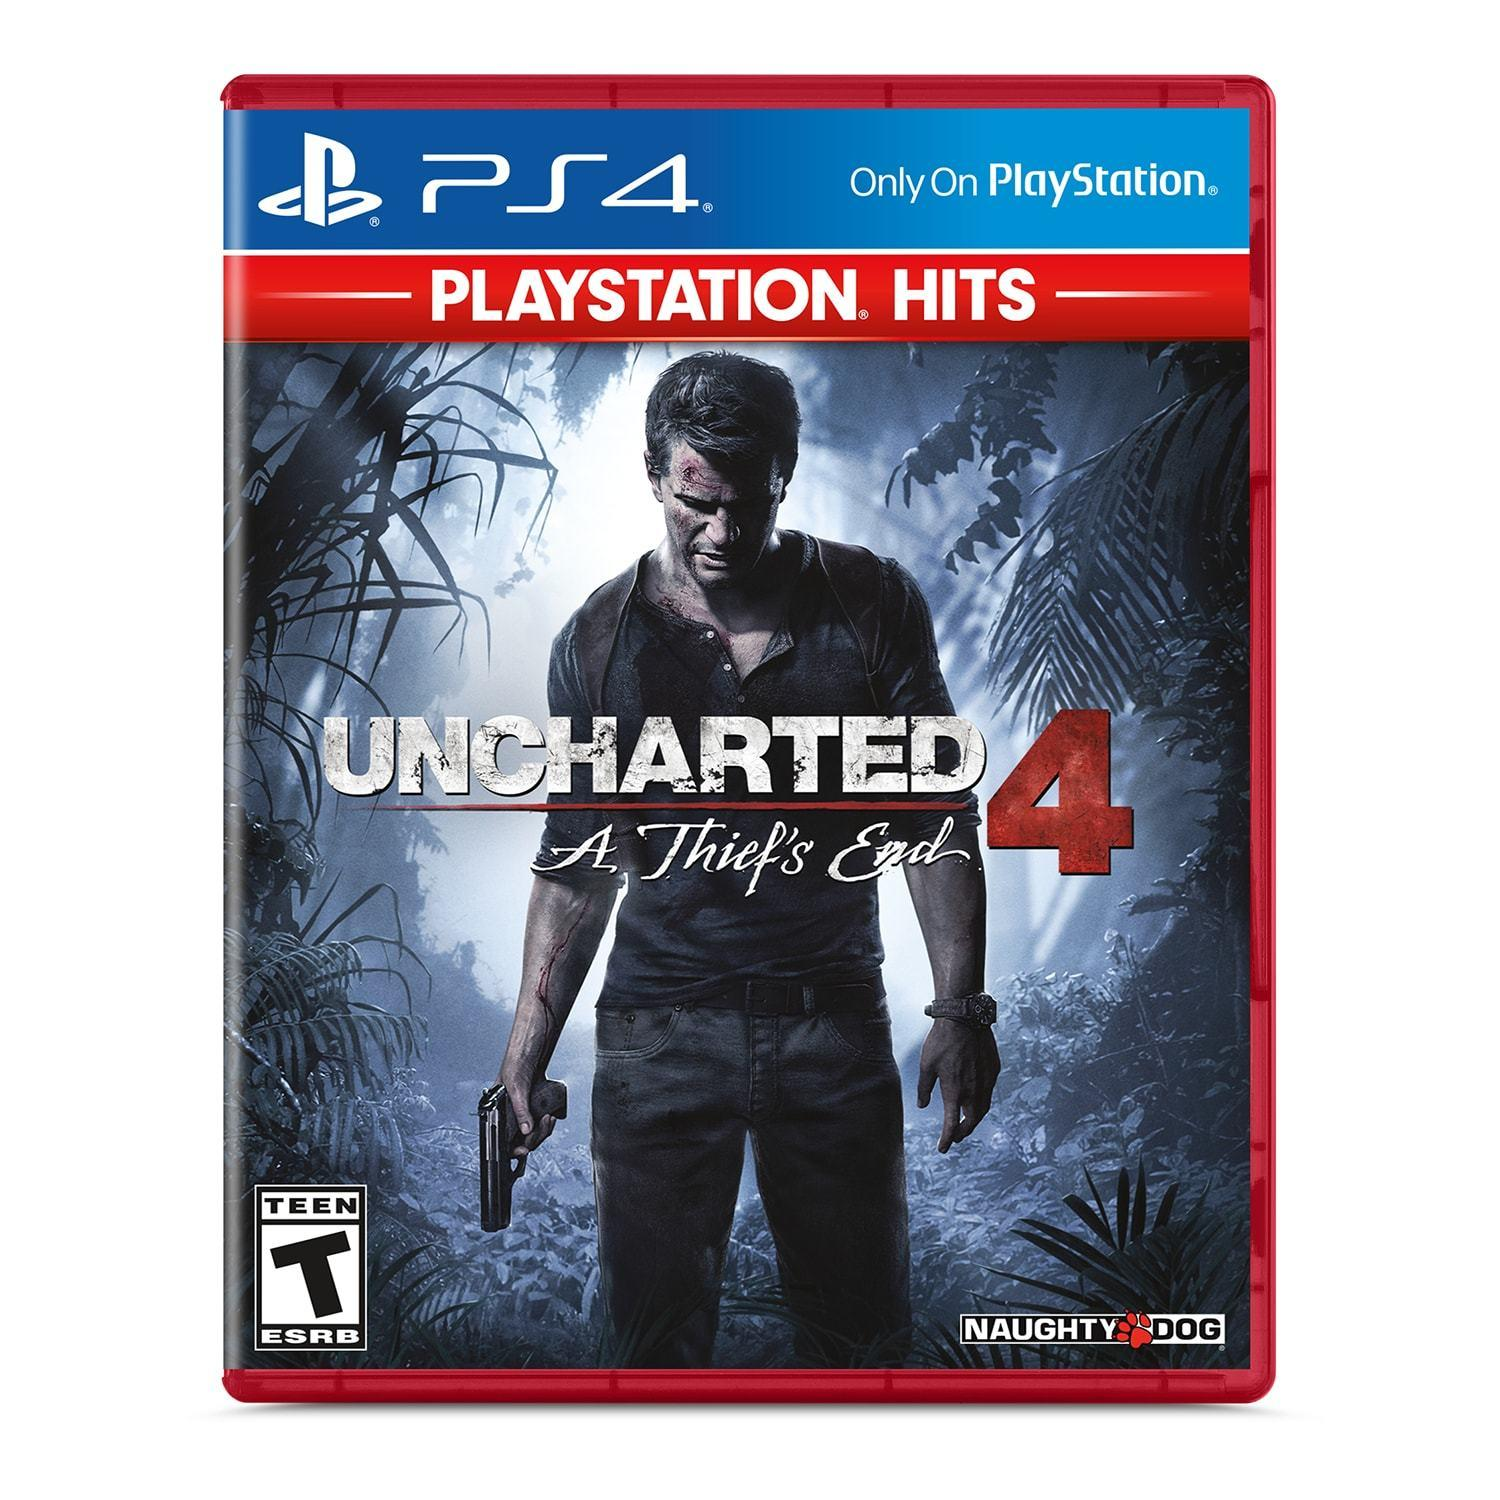 PS4 Games: Little Big Planet 3, Uncharted 4: A Thief's End